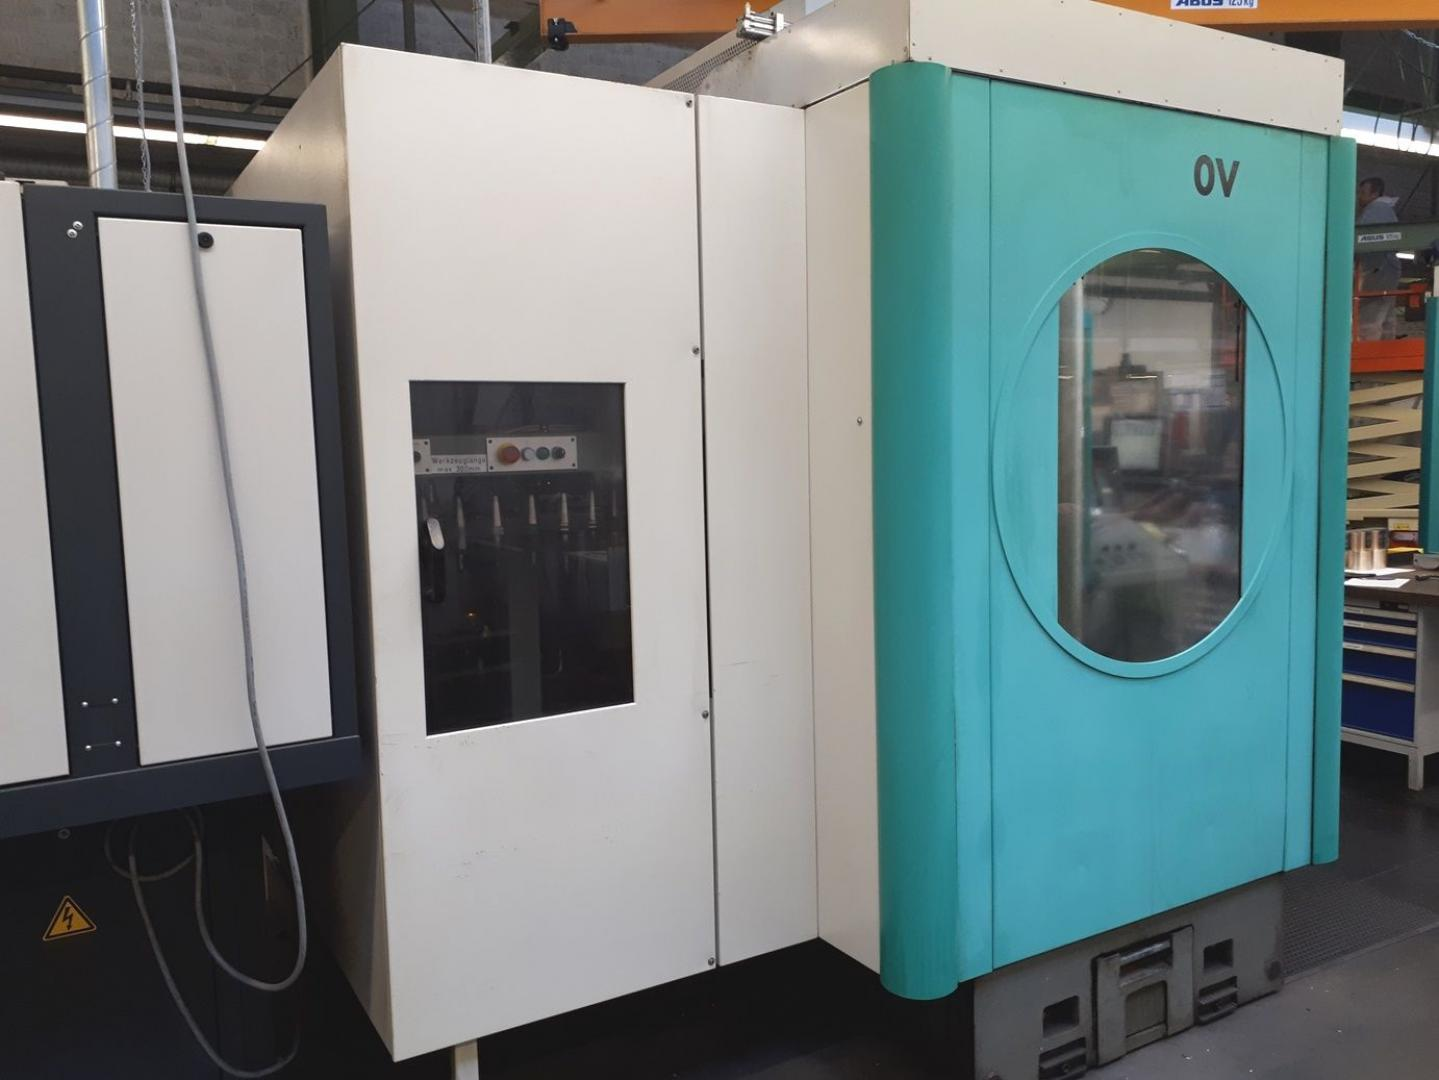 used  Machining Center - Vertical Deckel-Maho DMC70V